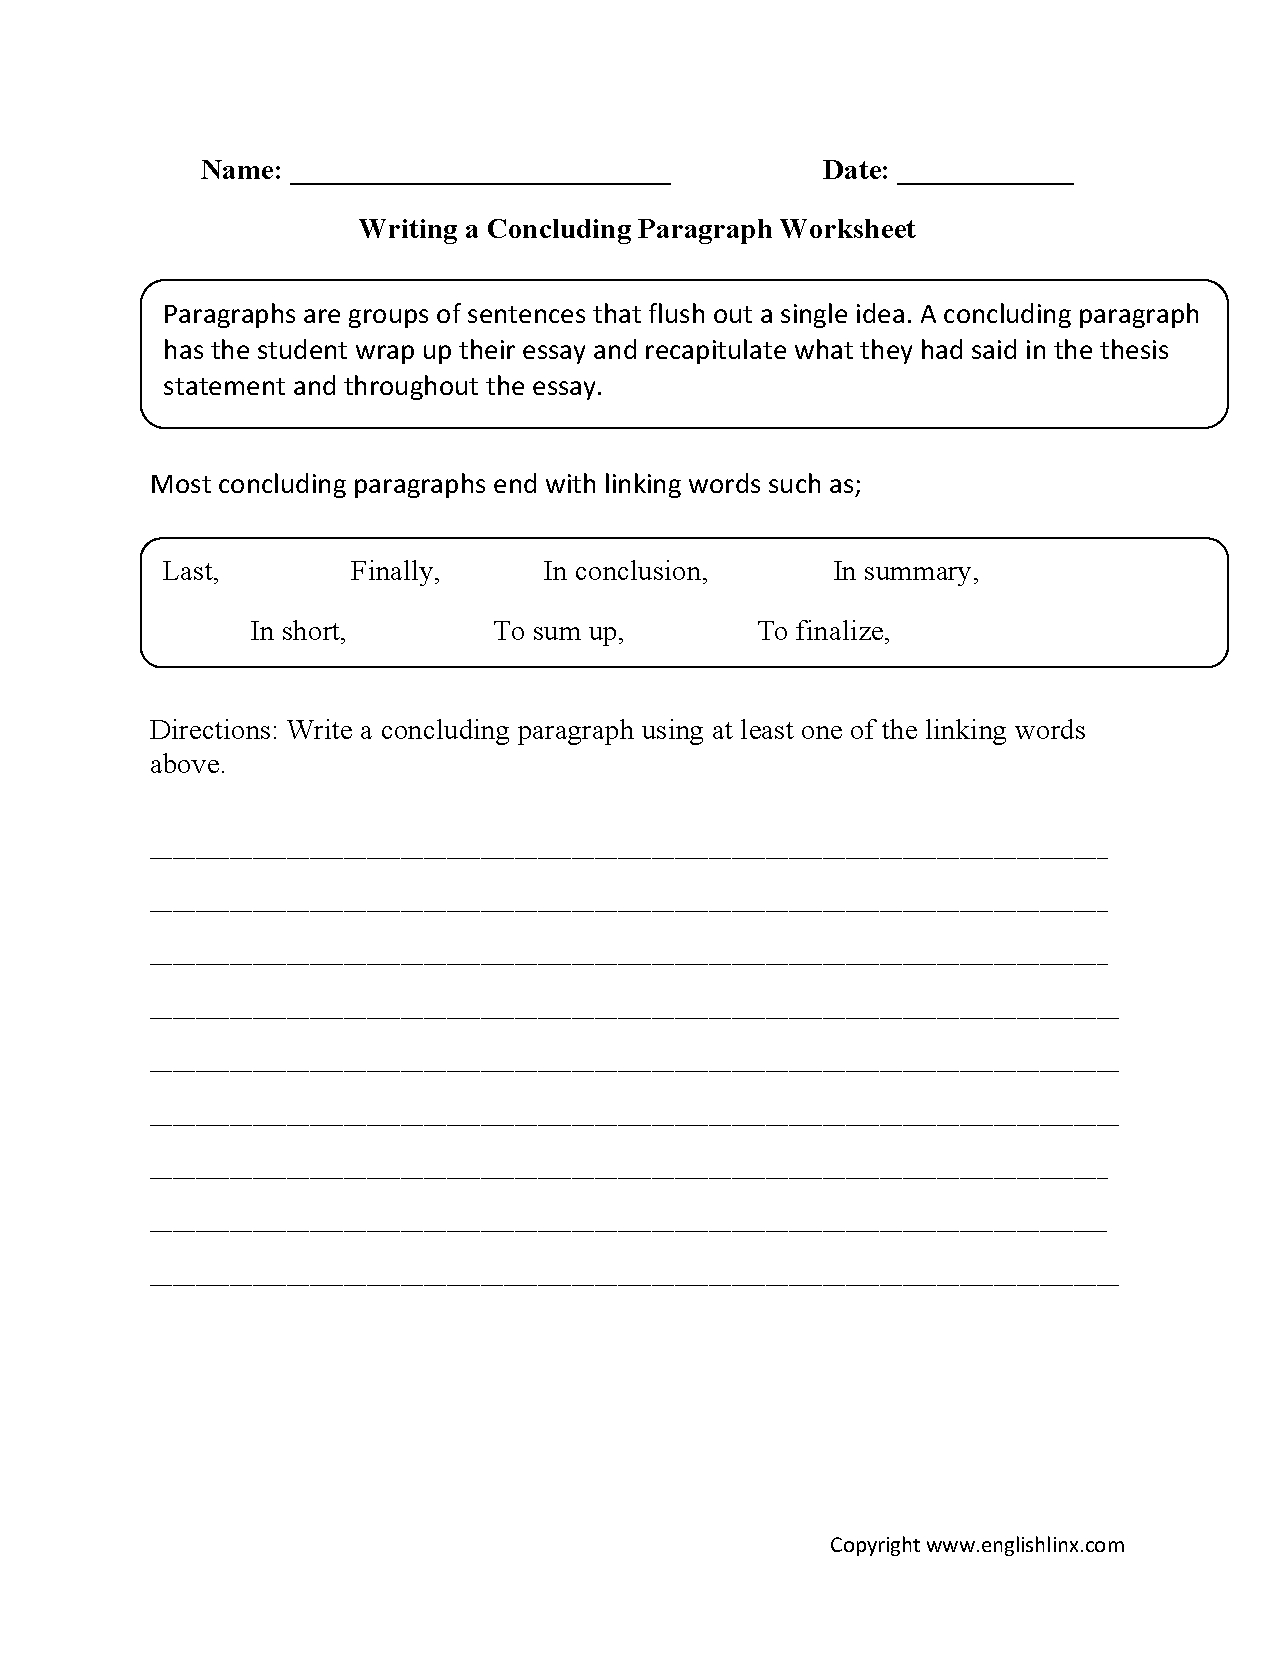 Writing Worksheets | Paragraph Writing Worksheets | Free Printable Paragraph Writing Worksheets